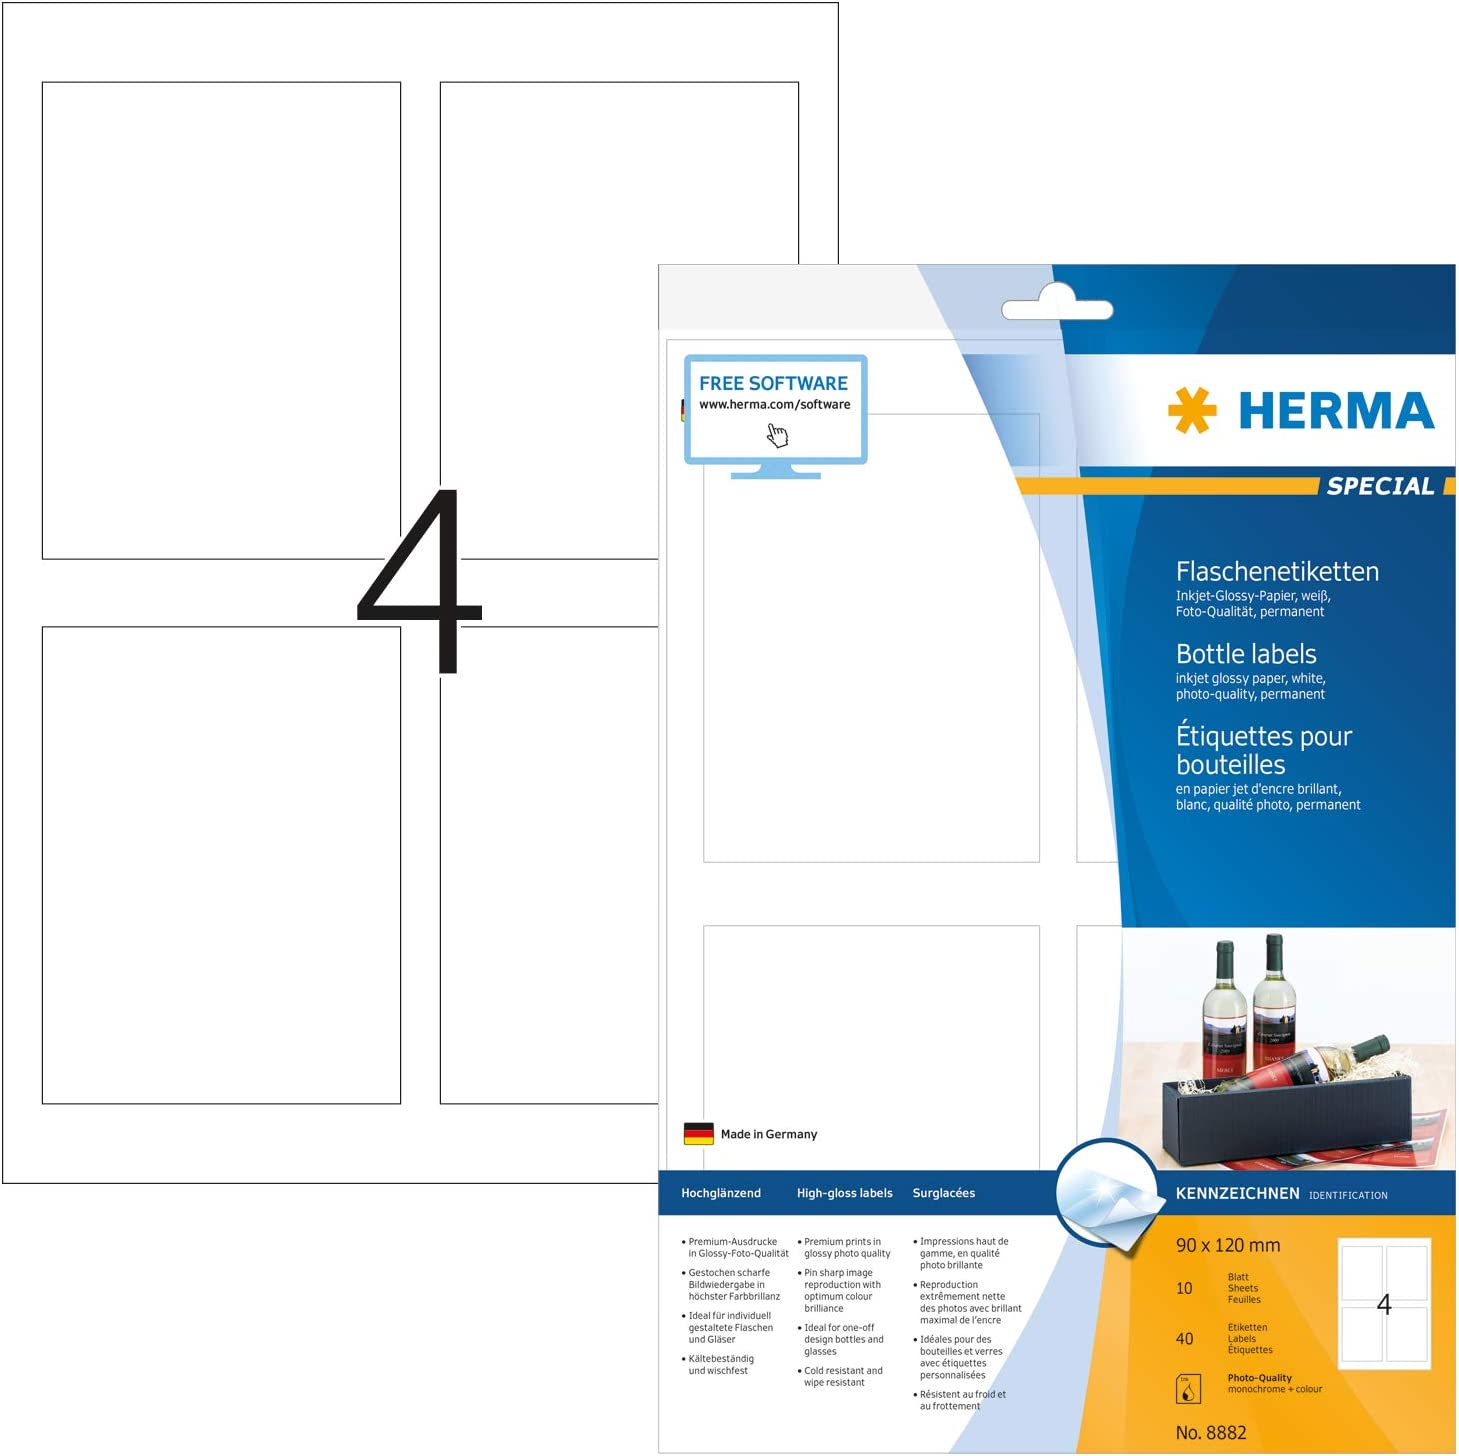 Amazon Com Herma Self Adhesive High Glossy Bottle Labels 4 Labels Per A4 Sheet 40 Labels For Inkjet Printers White 90 X 120 Mm 8882 Office Products